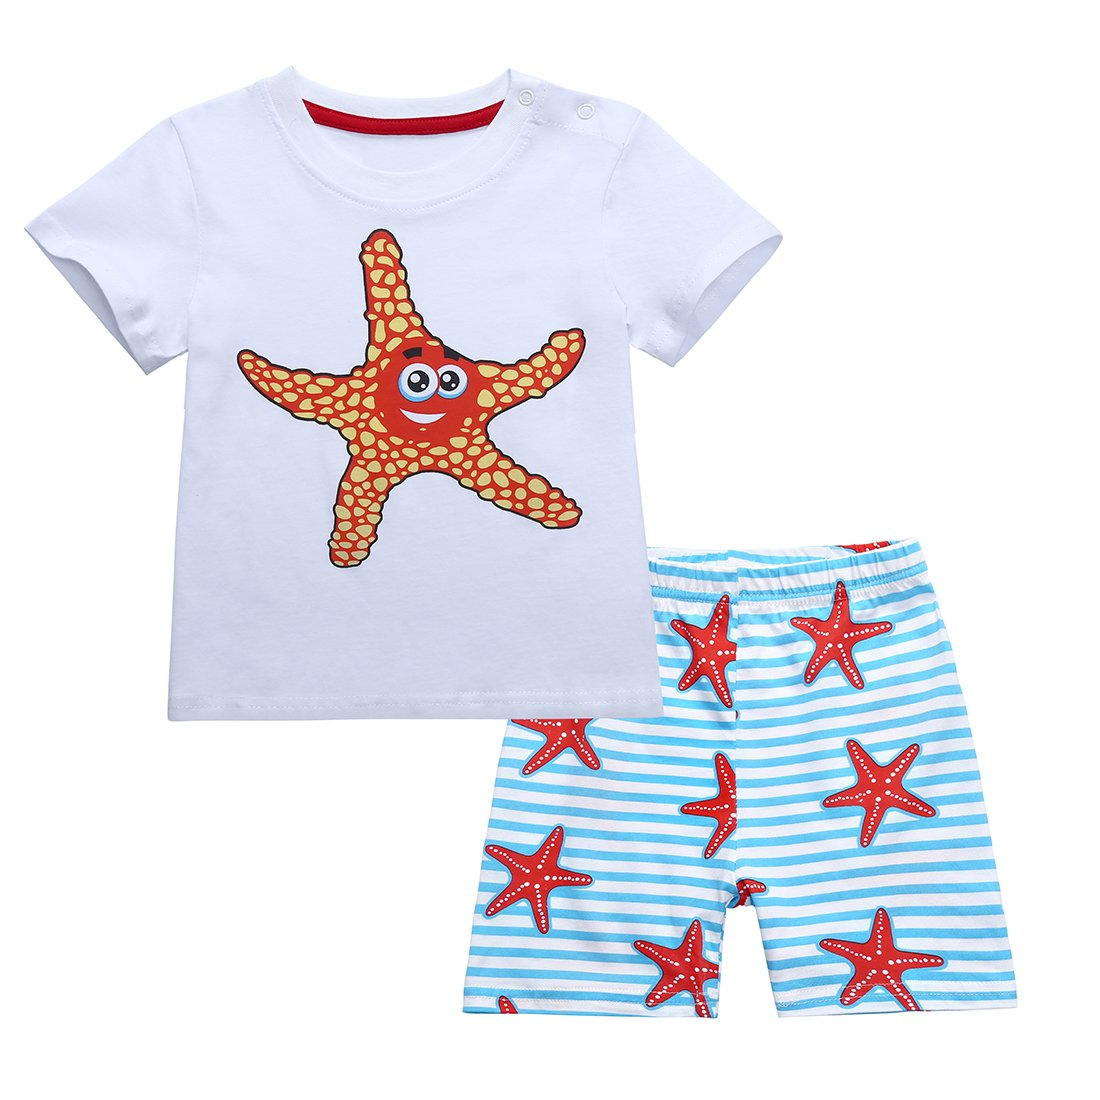 Neeseelily Baby Boys Girl's Summer Cute Sleeve Short T-Shirt and Shorts 2pcs Outfit Set